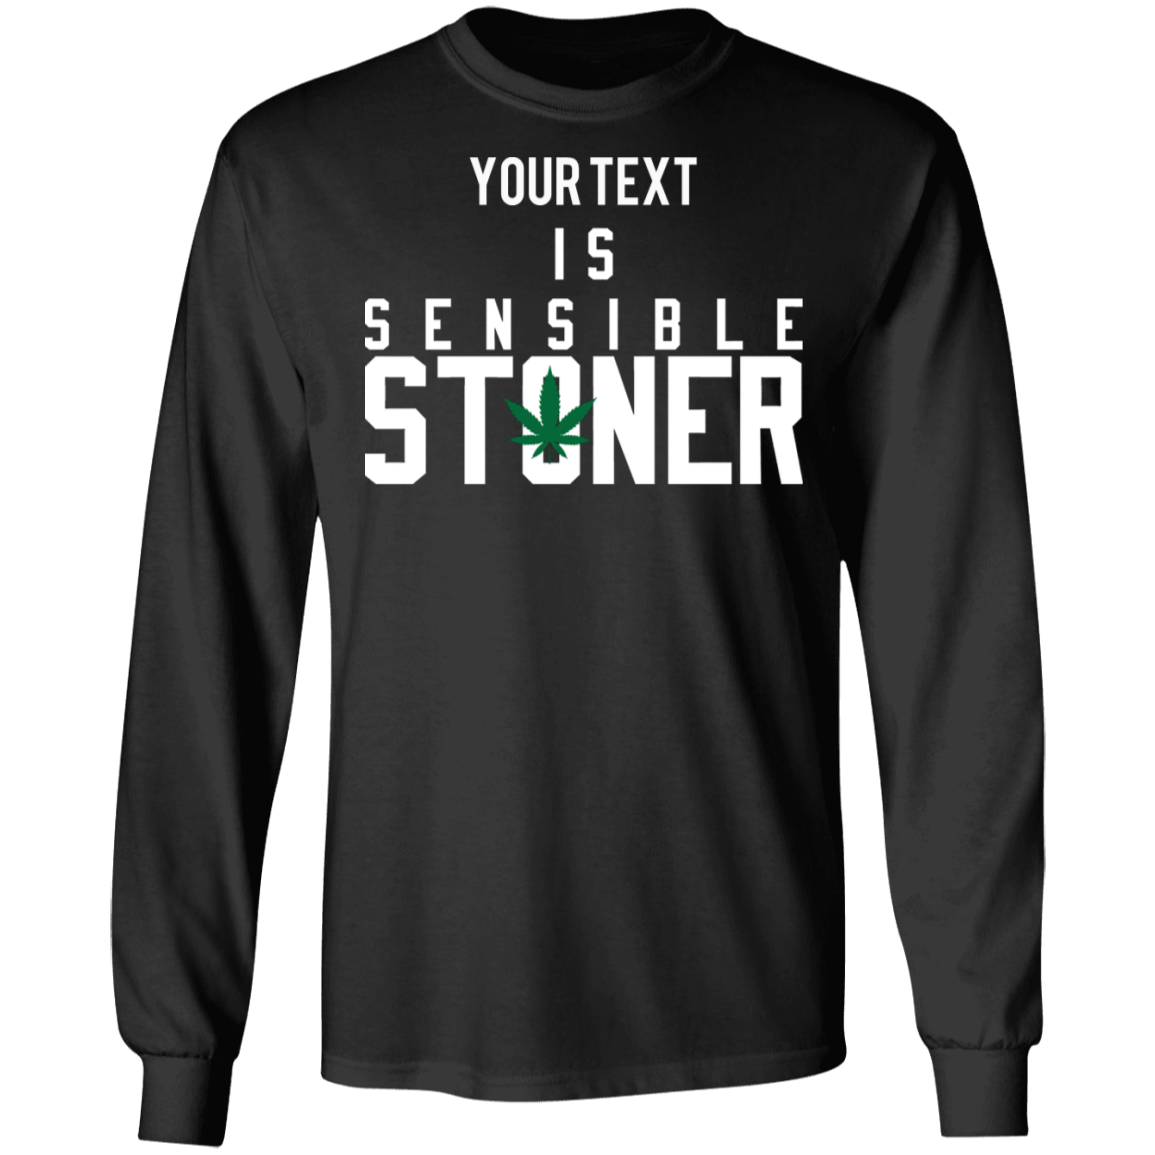 Sensible Stoner Long Sleeve